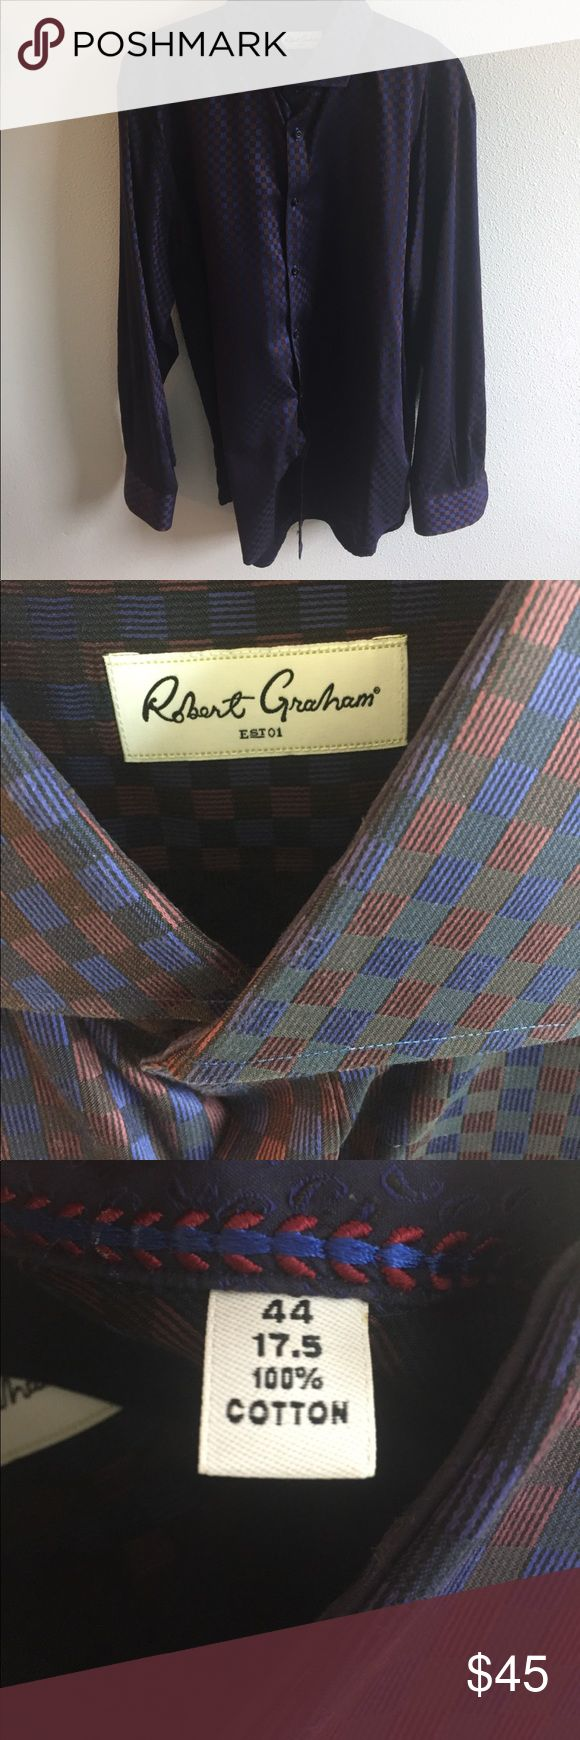 Robert Graham Dress Shirt This shirt is amazing! The coolest navy and brown check pattern. Classy and cutting-edge. Size 44/17.5 (XL). Like new - worn maybe once. Robert Graham Shirts Dress Shirts